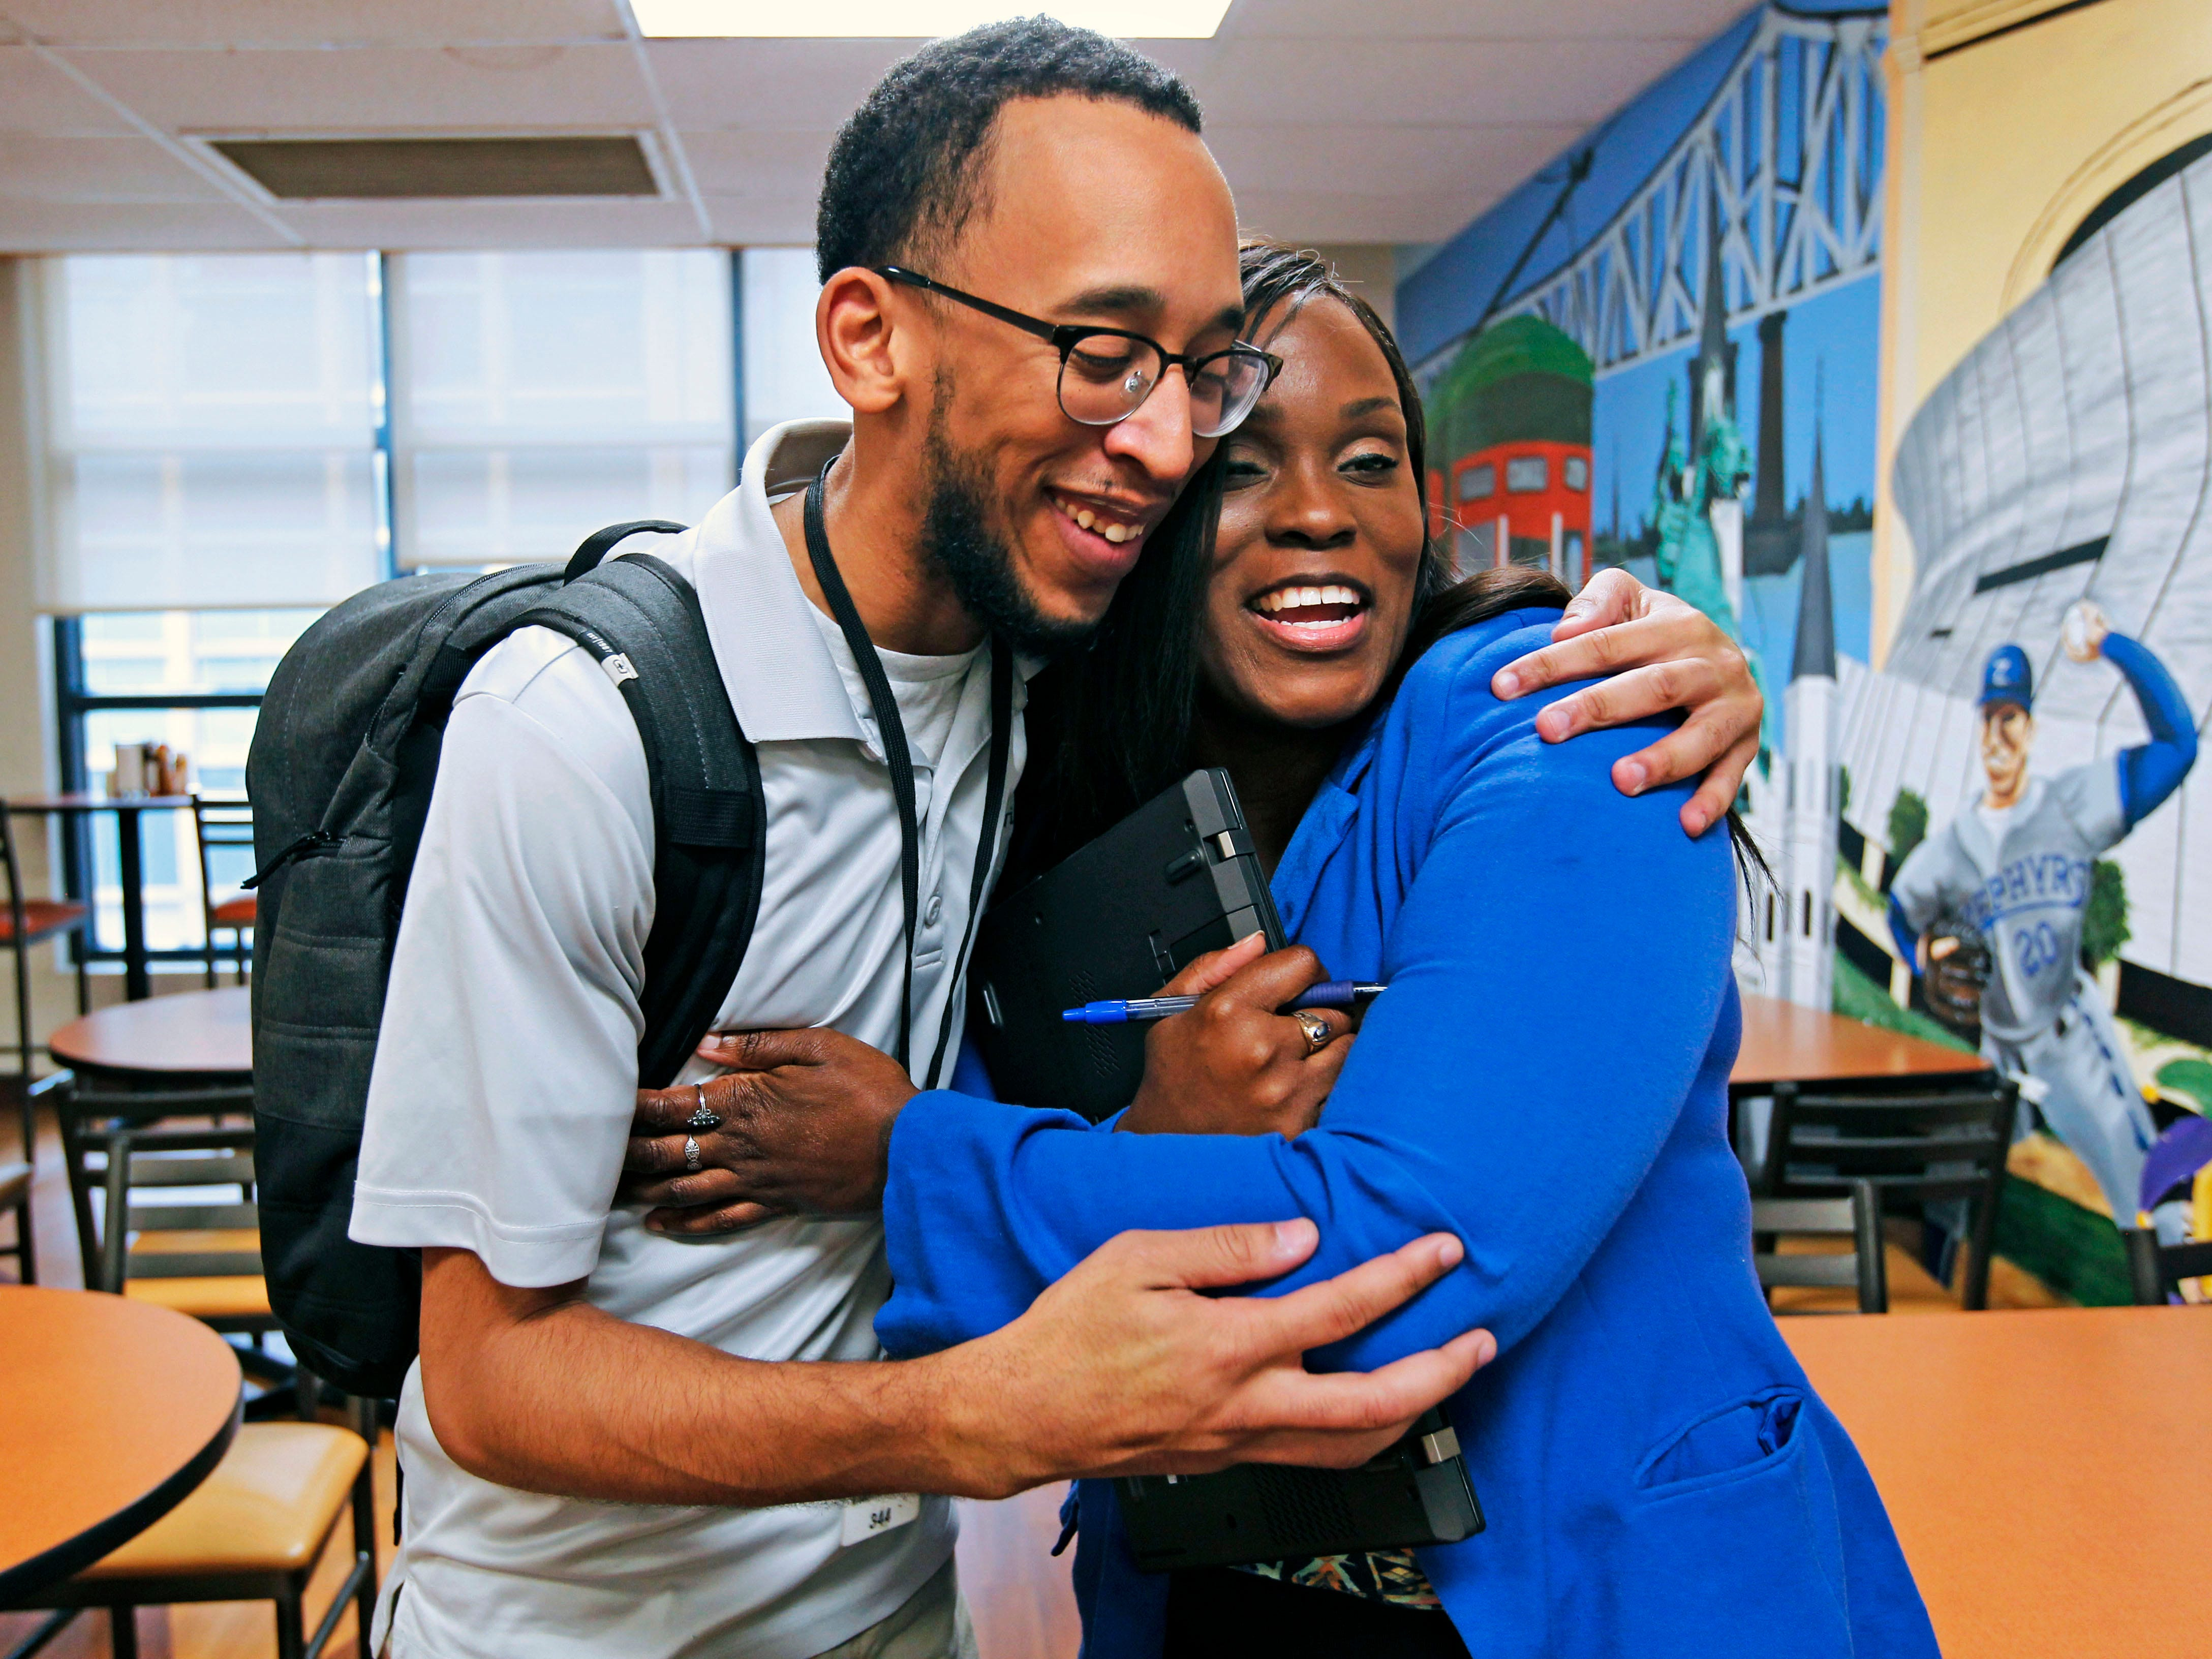 Lead navigator Gary Briggs for EdNavigator (left) gets a hug from from Tamyra Morris, following their weekly meeting.